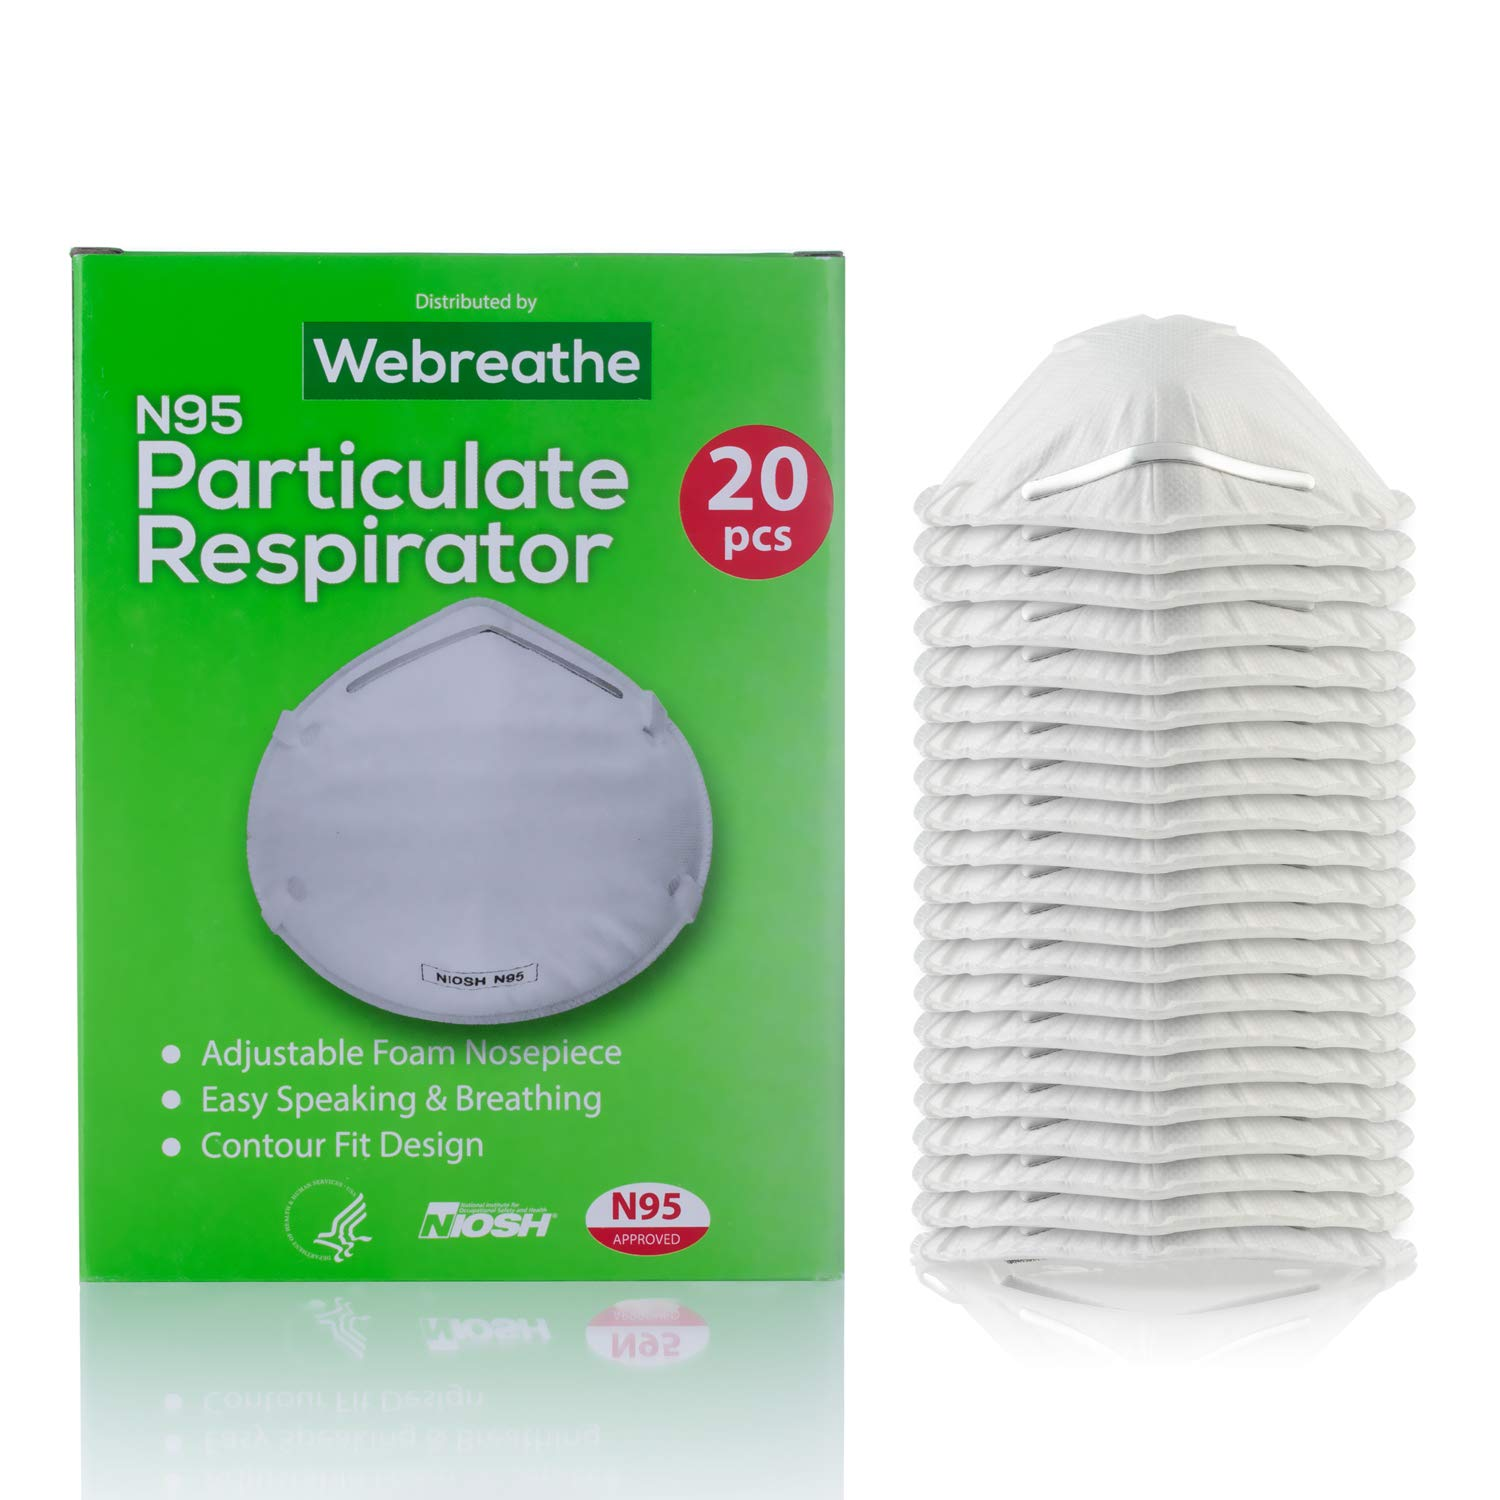 Disposable Dust Masks respirators for face - NIOSH Certified - Safety N95 Respirator Mask (20 pack) for Cleaning, Anti Pollution, Surgical operations & more by WeBreathe (Image #3)